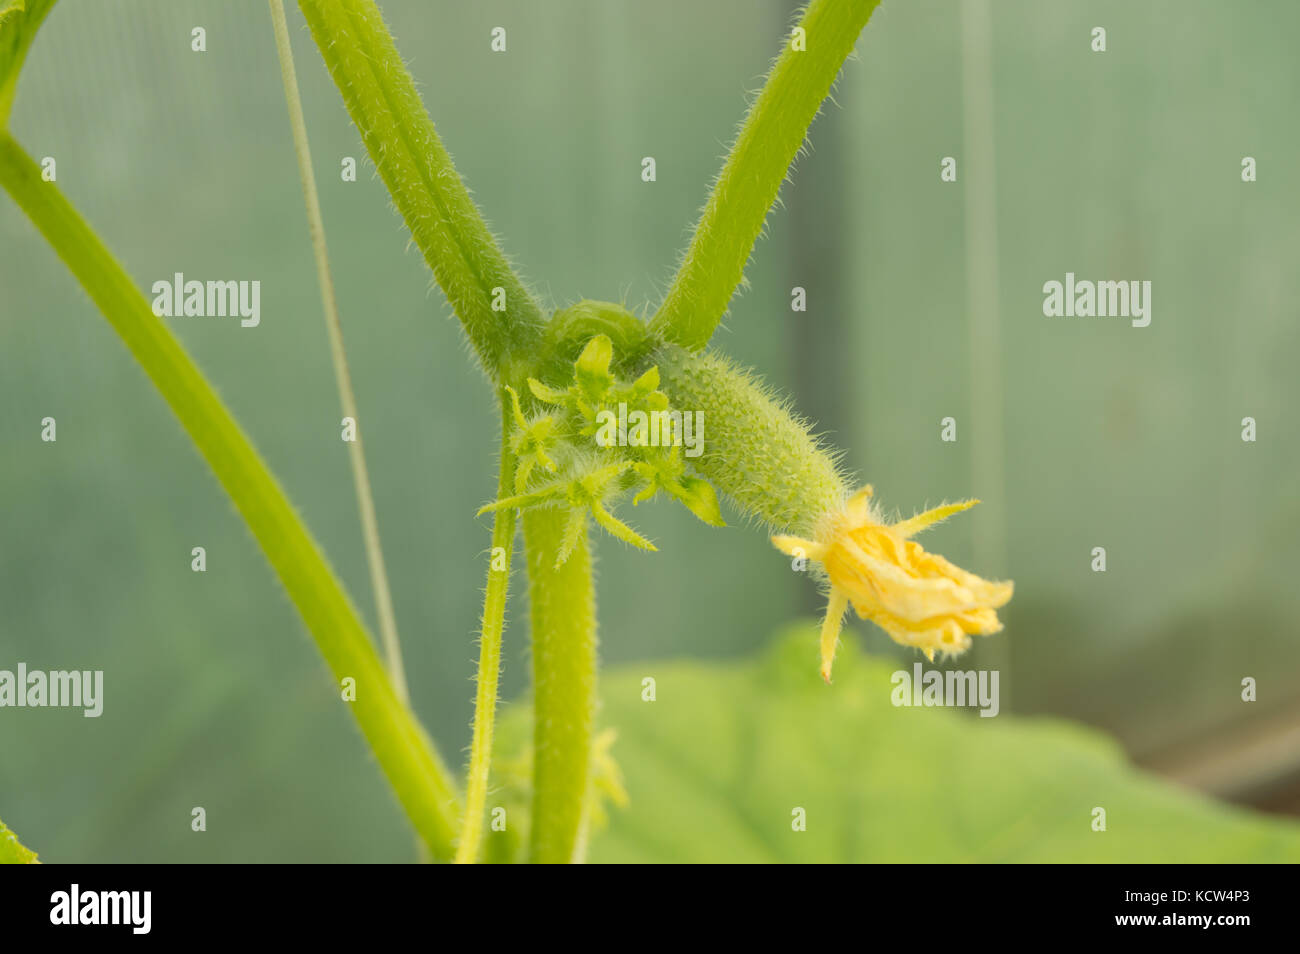 Young plants are green cucumbers with flowers hanging on the branch. Stock Photo